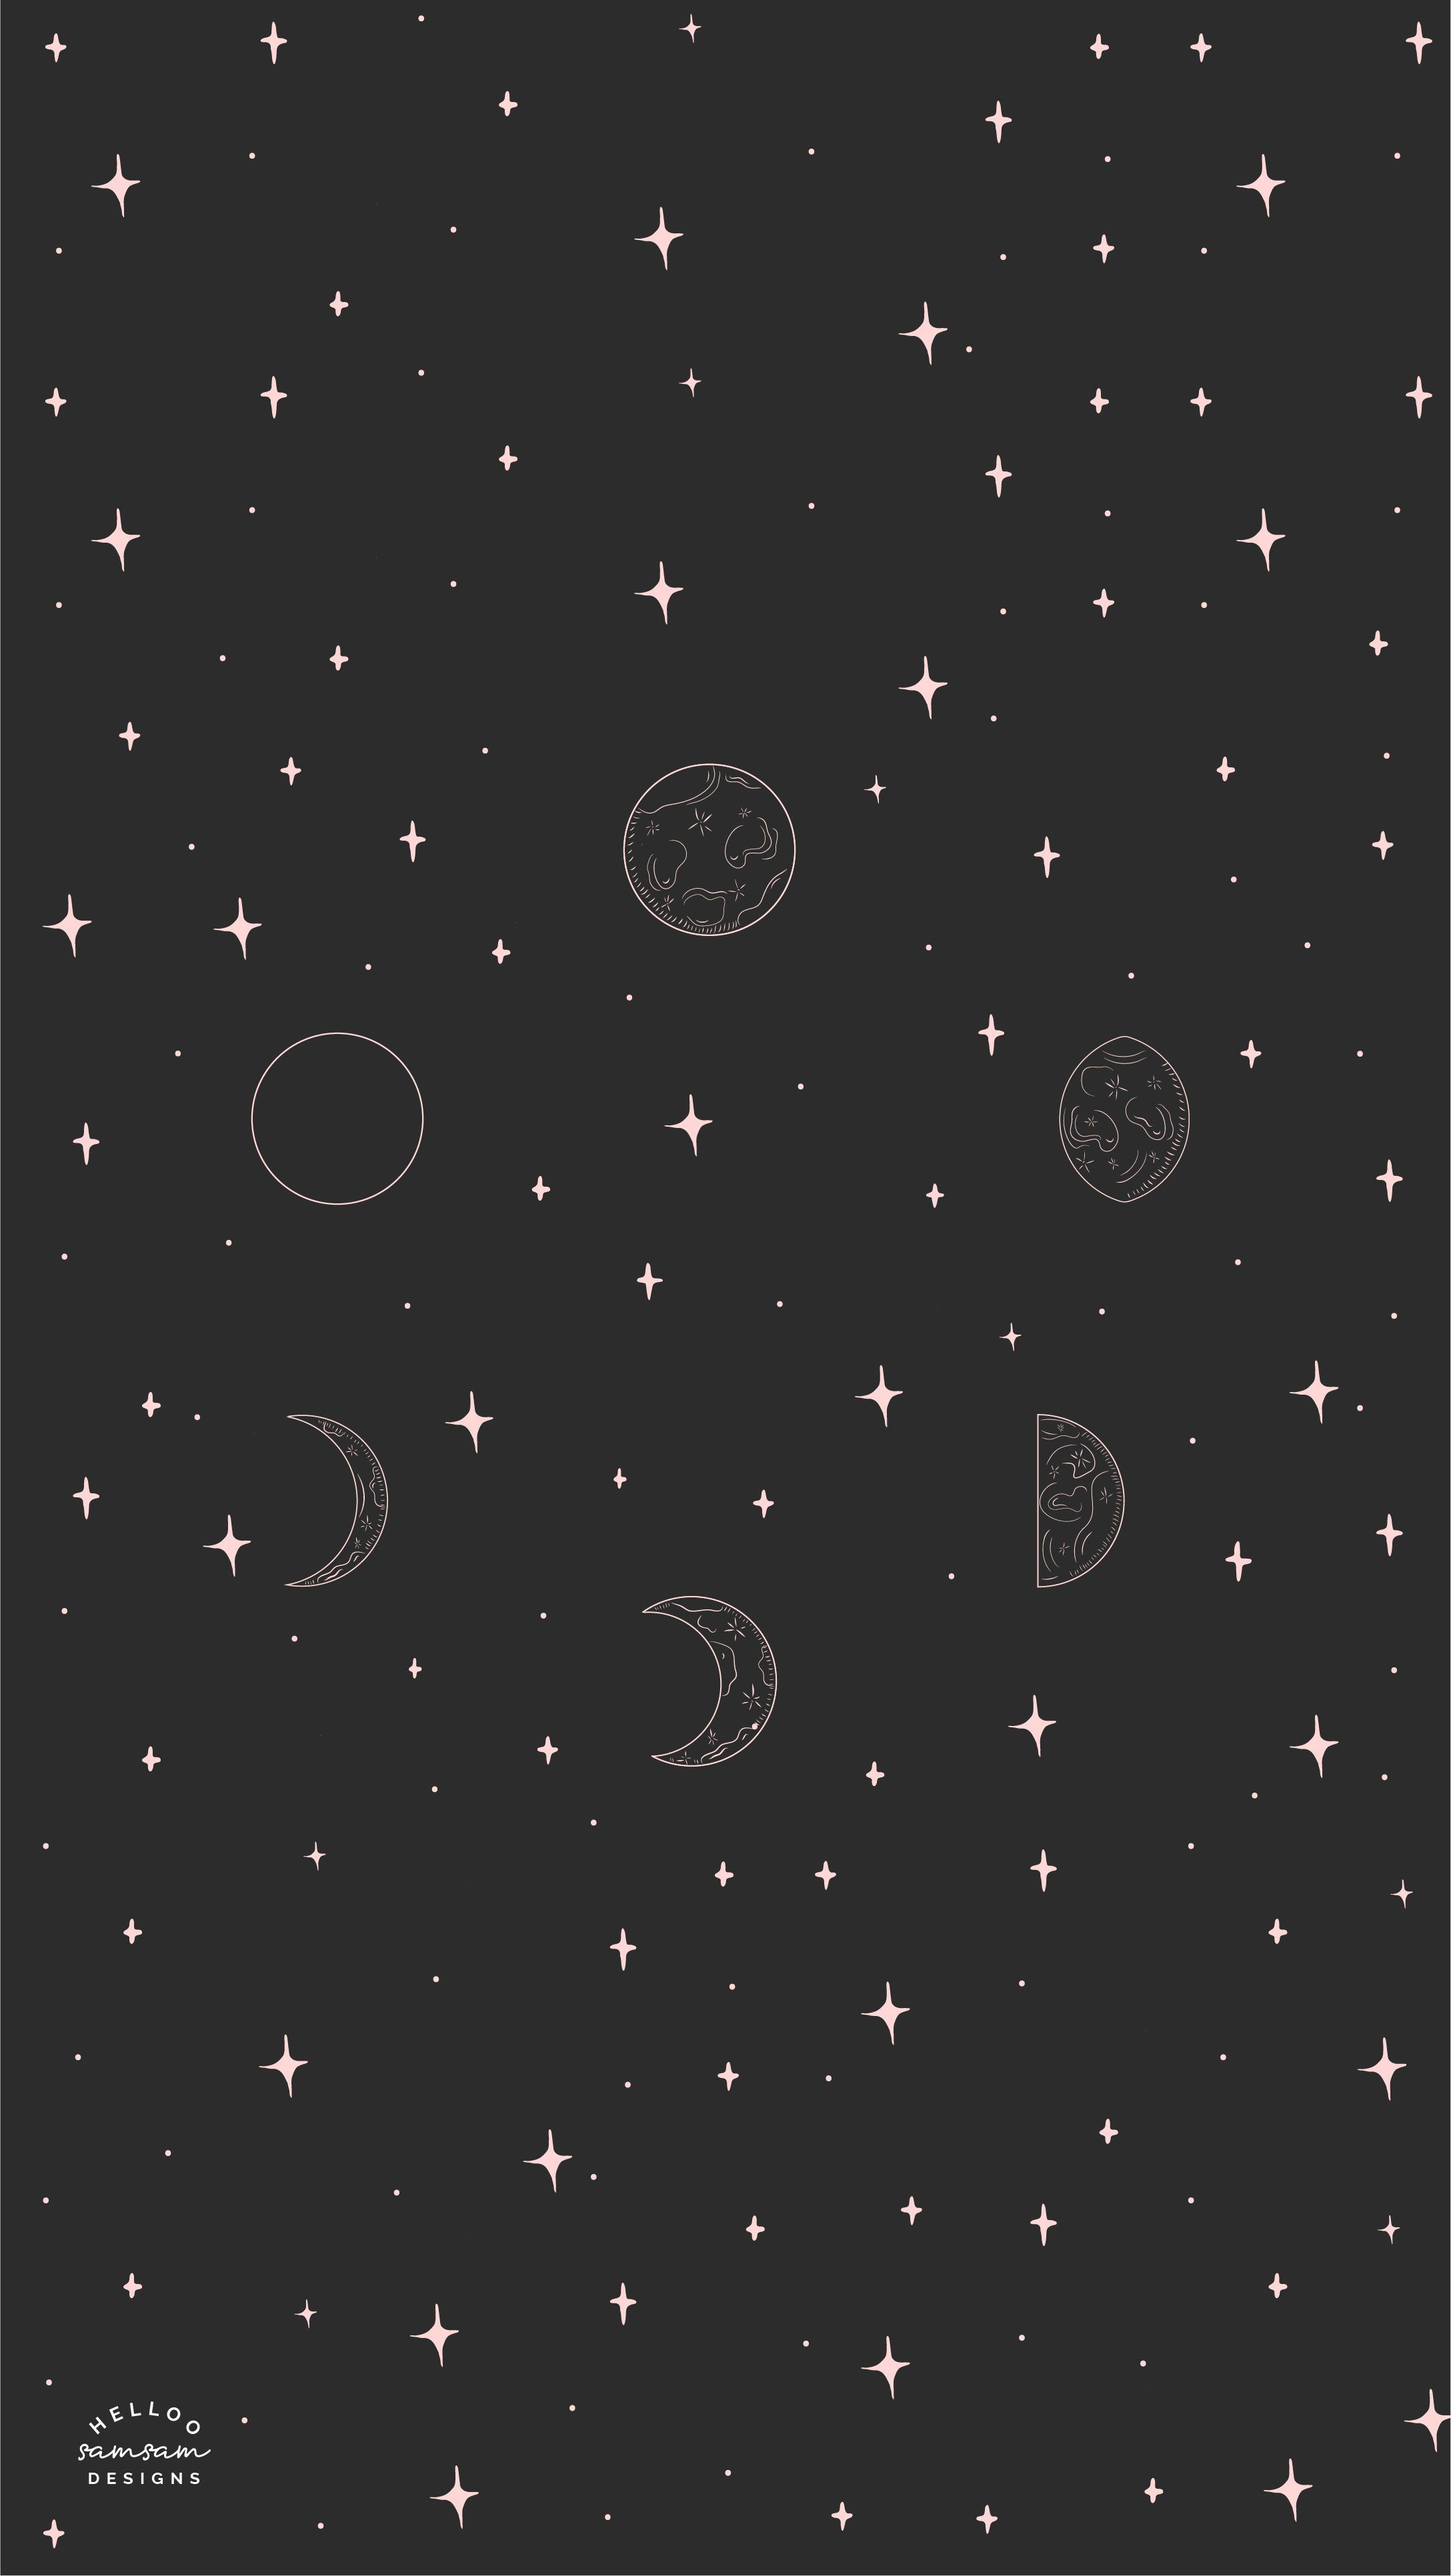 Free Moon Phases Tech Wallpaper Cute Wallpaper Backgrounds Witchy Wallpaper Dark Wallpaper